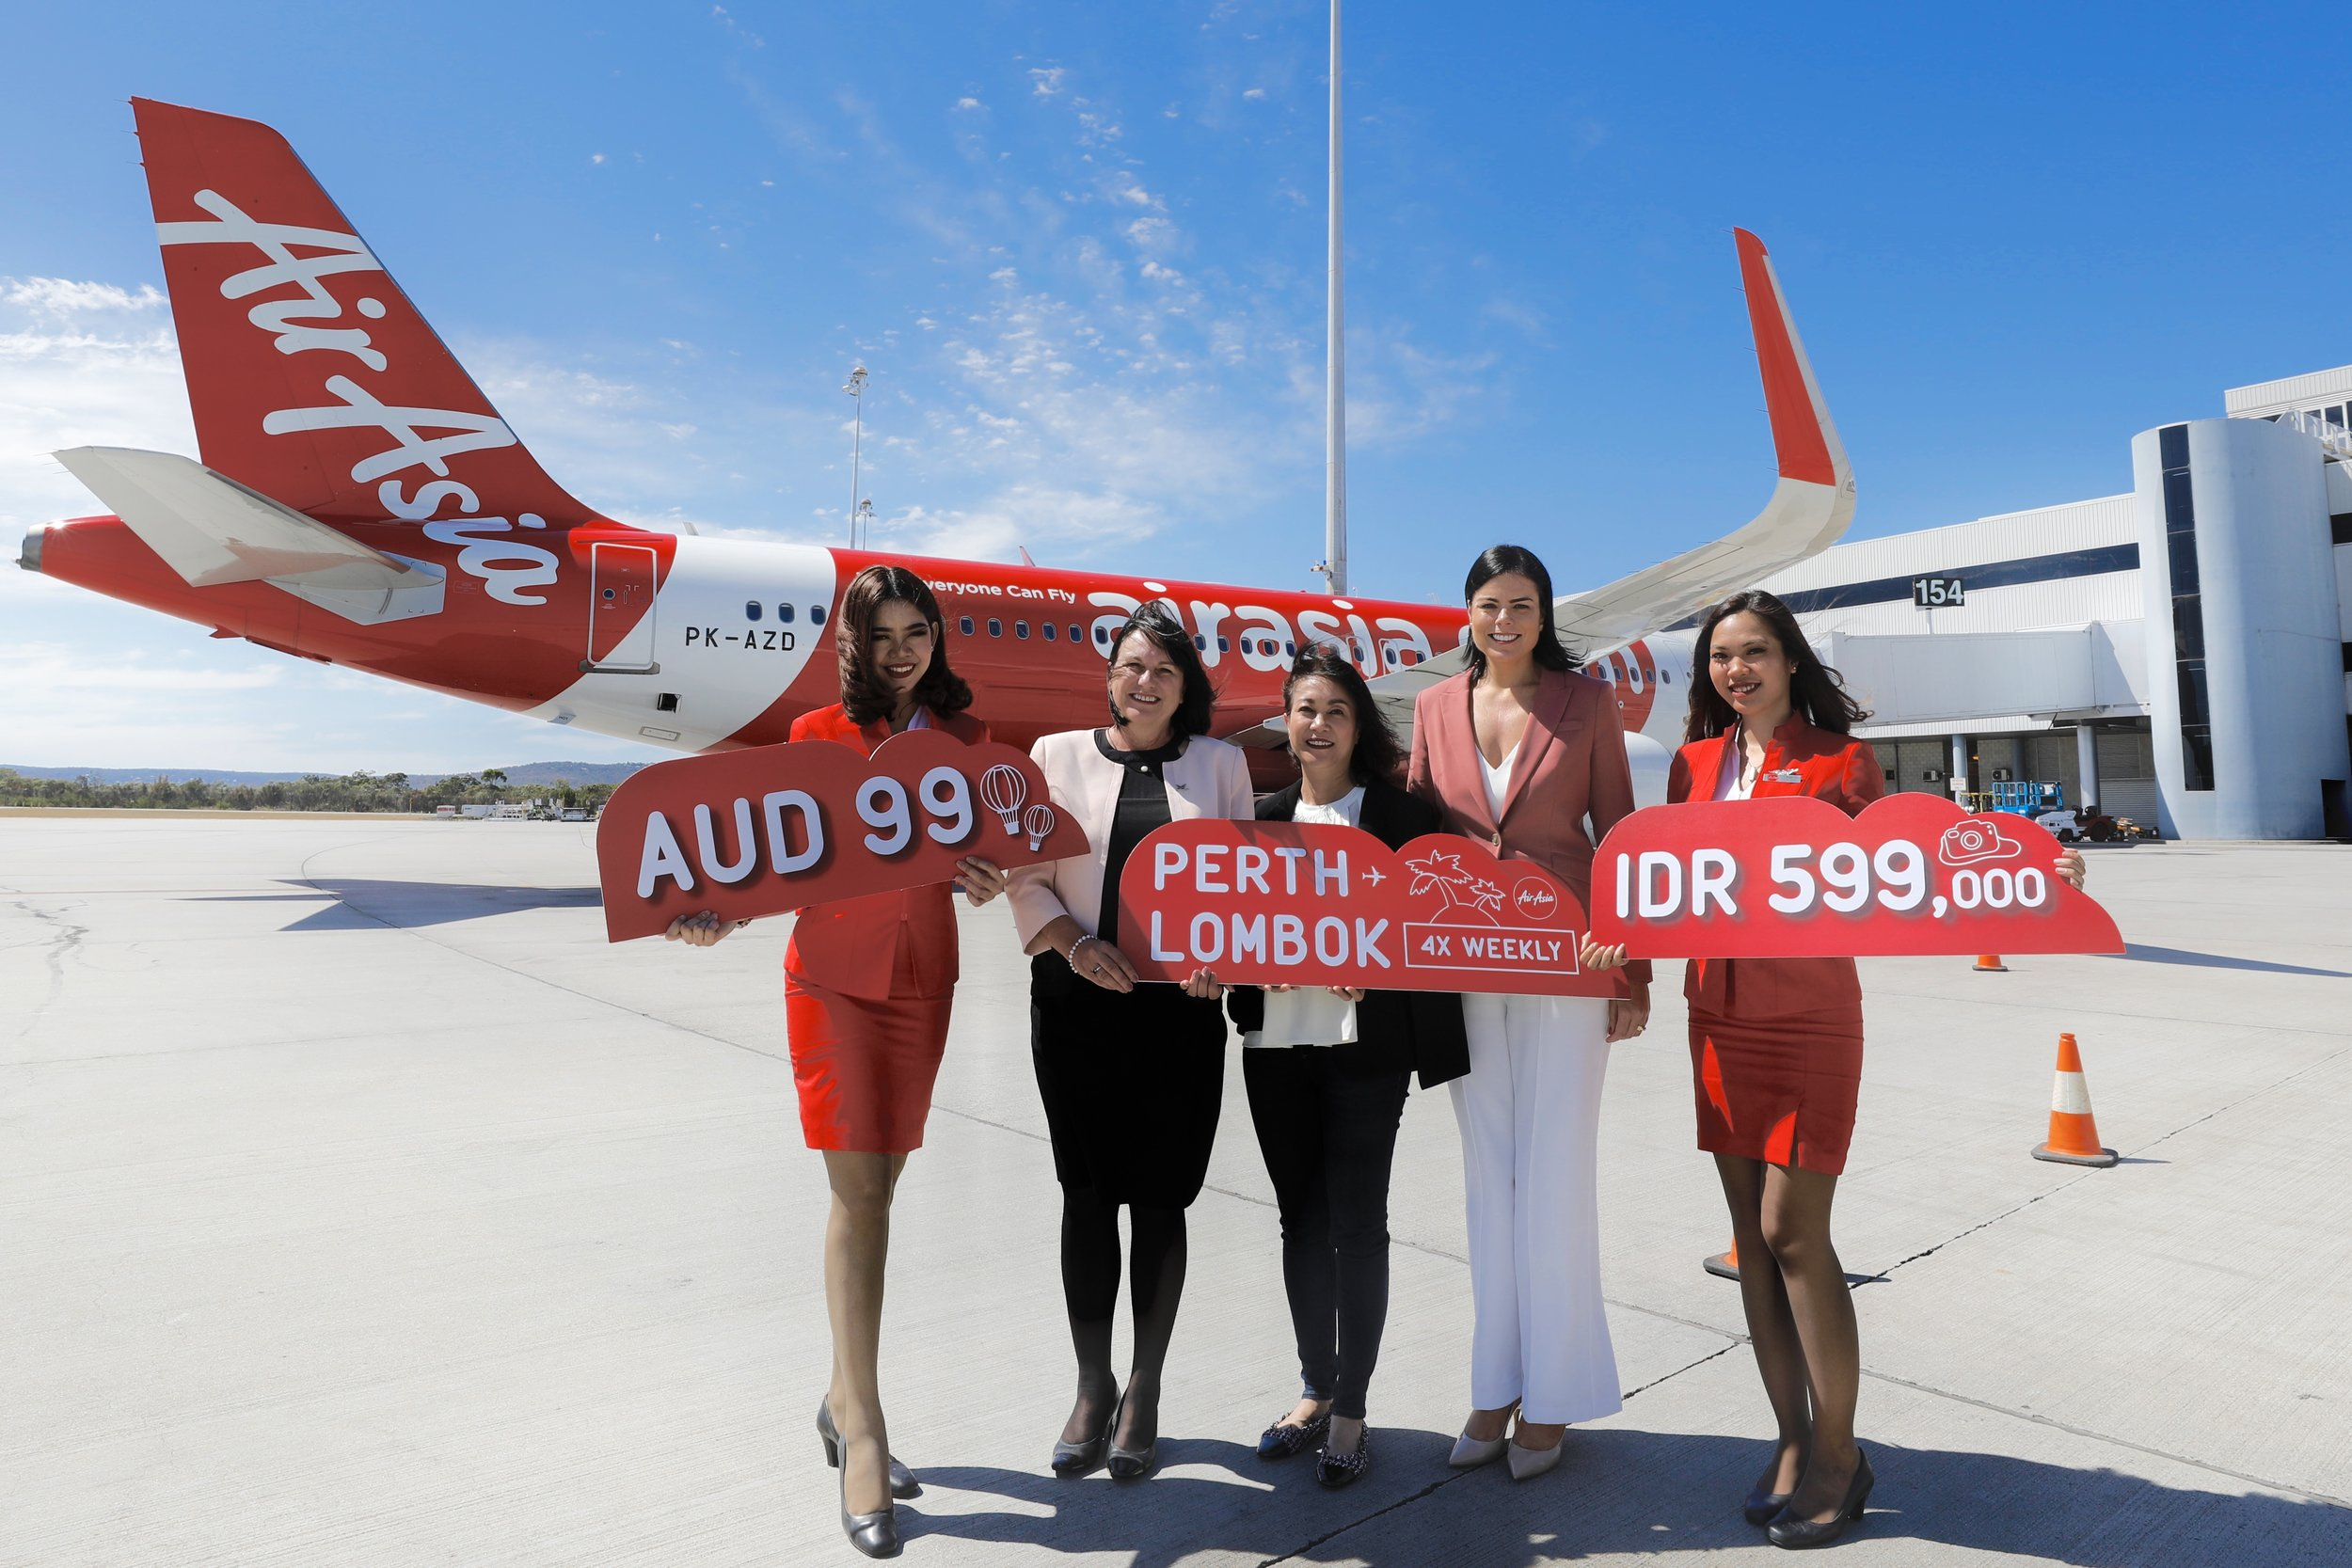 Photo Caption L-R: Debra Blaskett, Chief Corporate Services Officer of Perth Airport;  Matana Thienthong, AirAsia's Commercial Head for Australia and Korea ; Carolyn Turnbull, Chief Aviation Business Development Officer of Perth Airport flanked by cabin crew